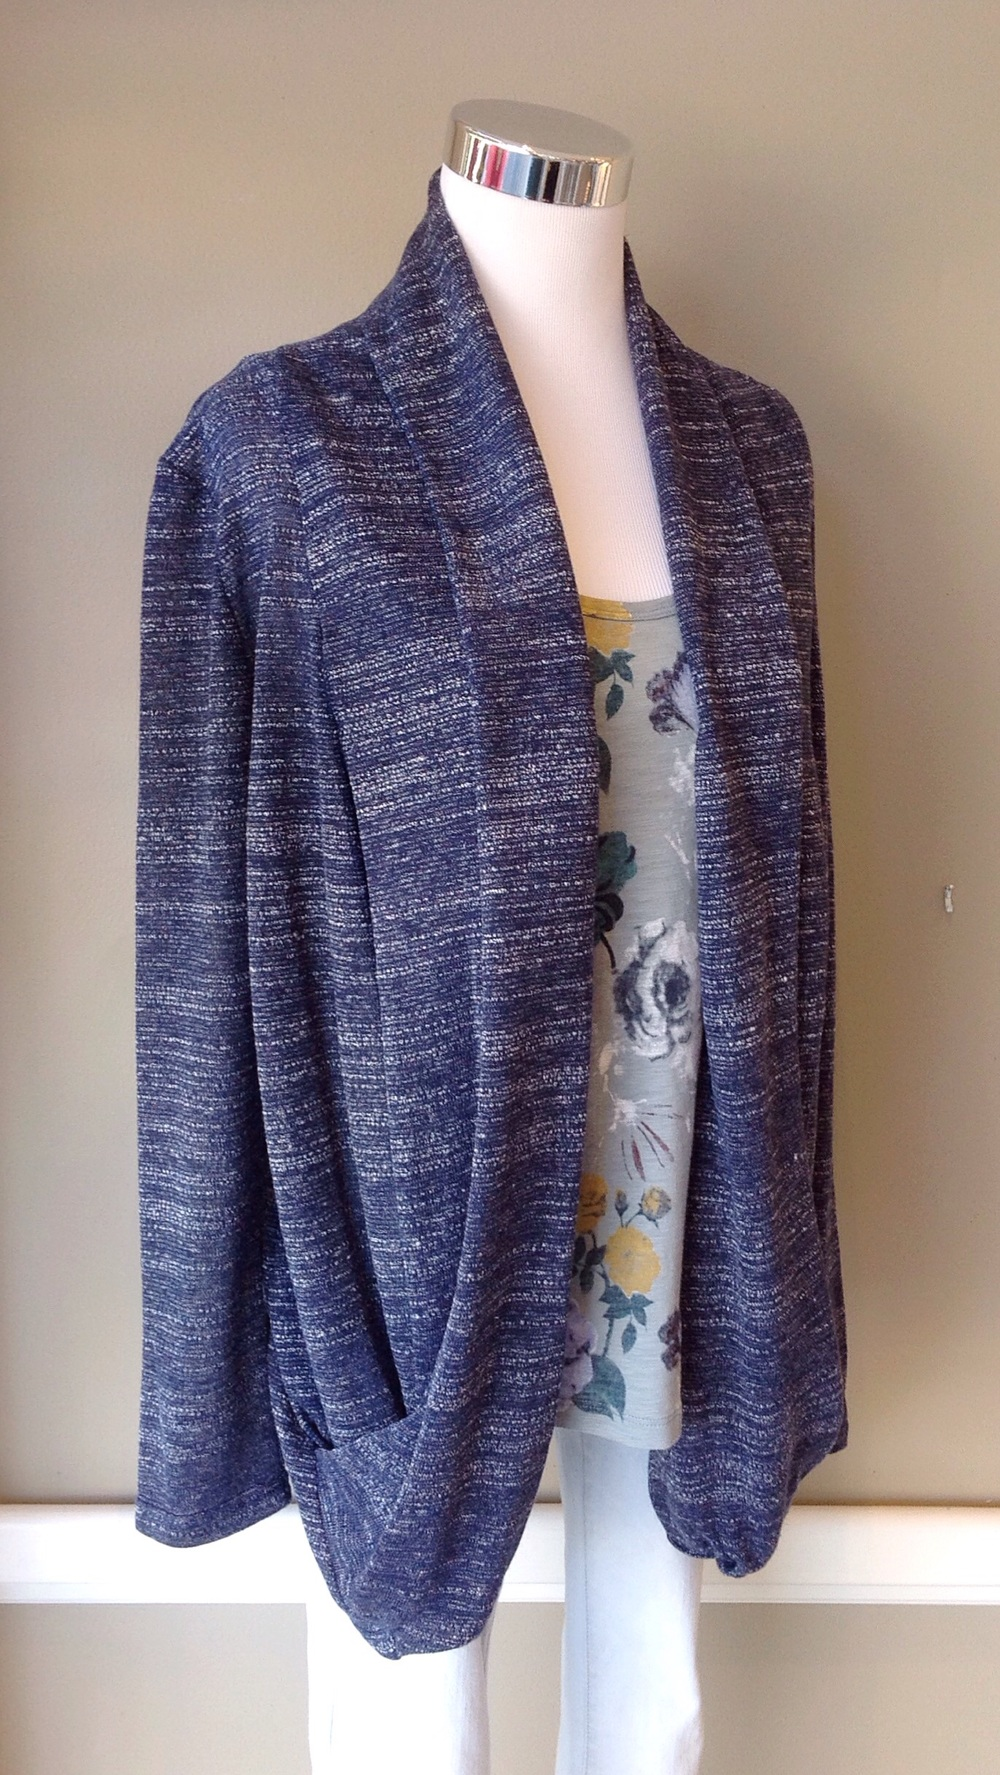 Navy and white textured knit cardigan, $35